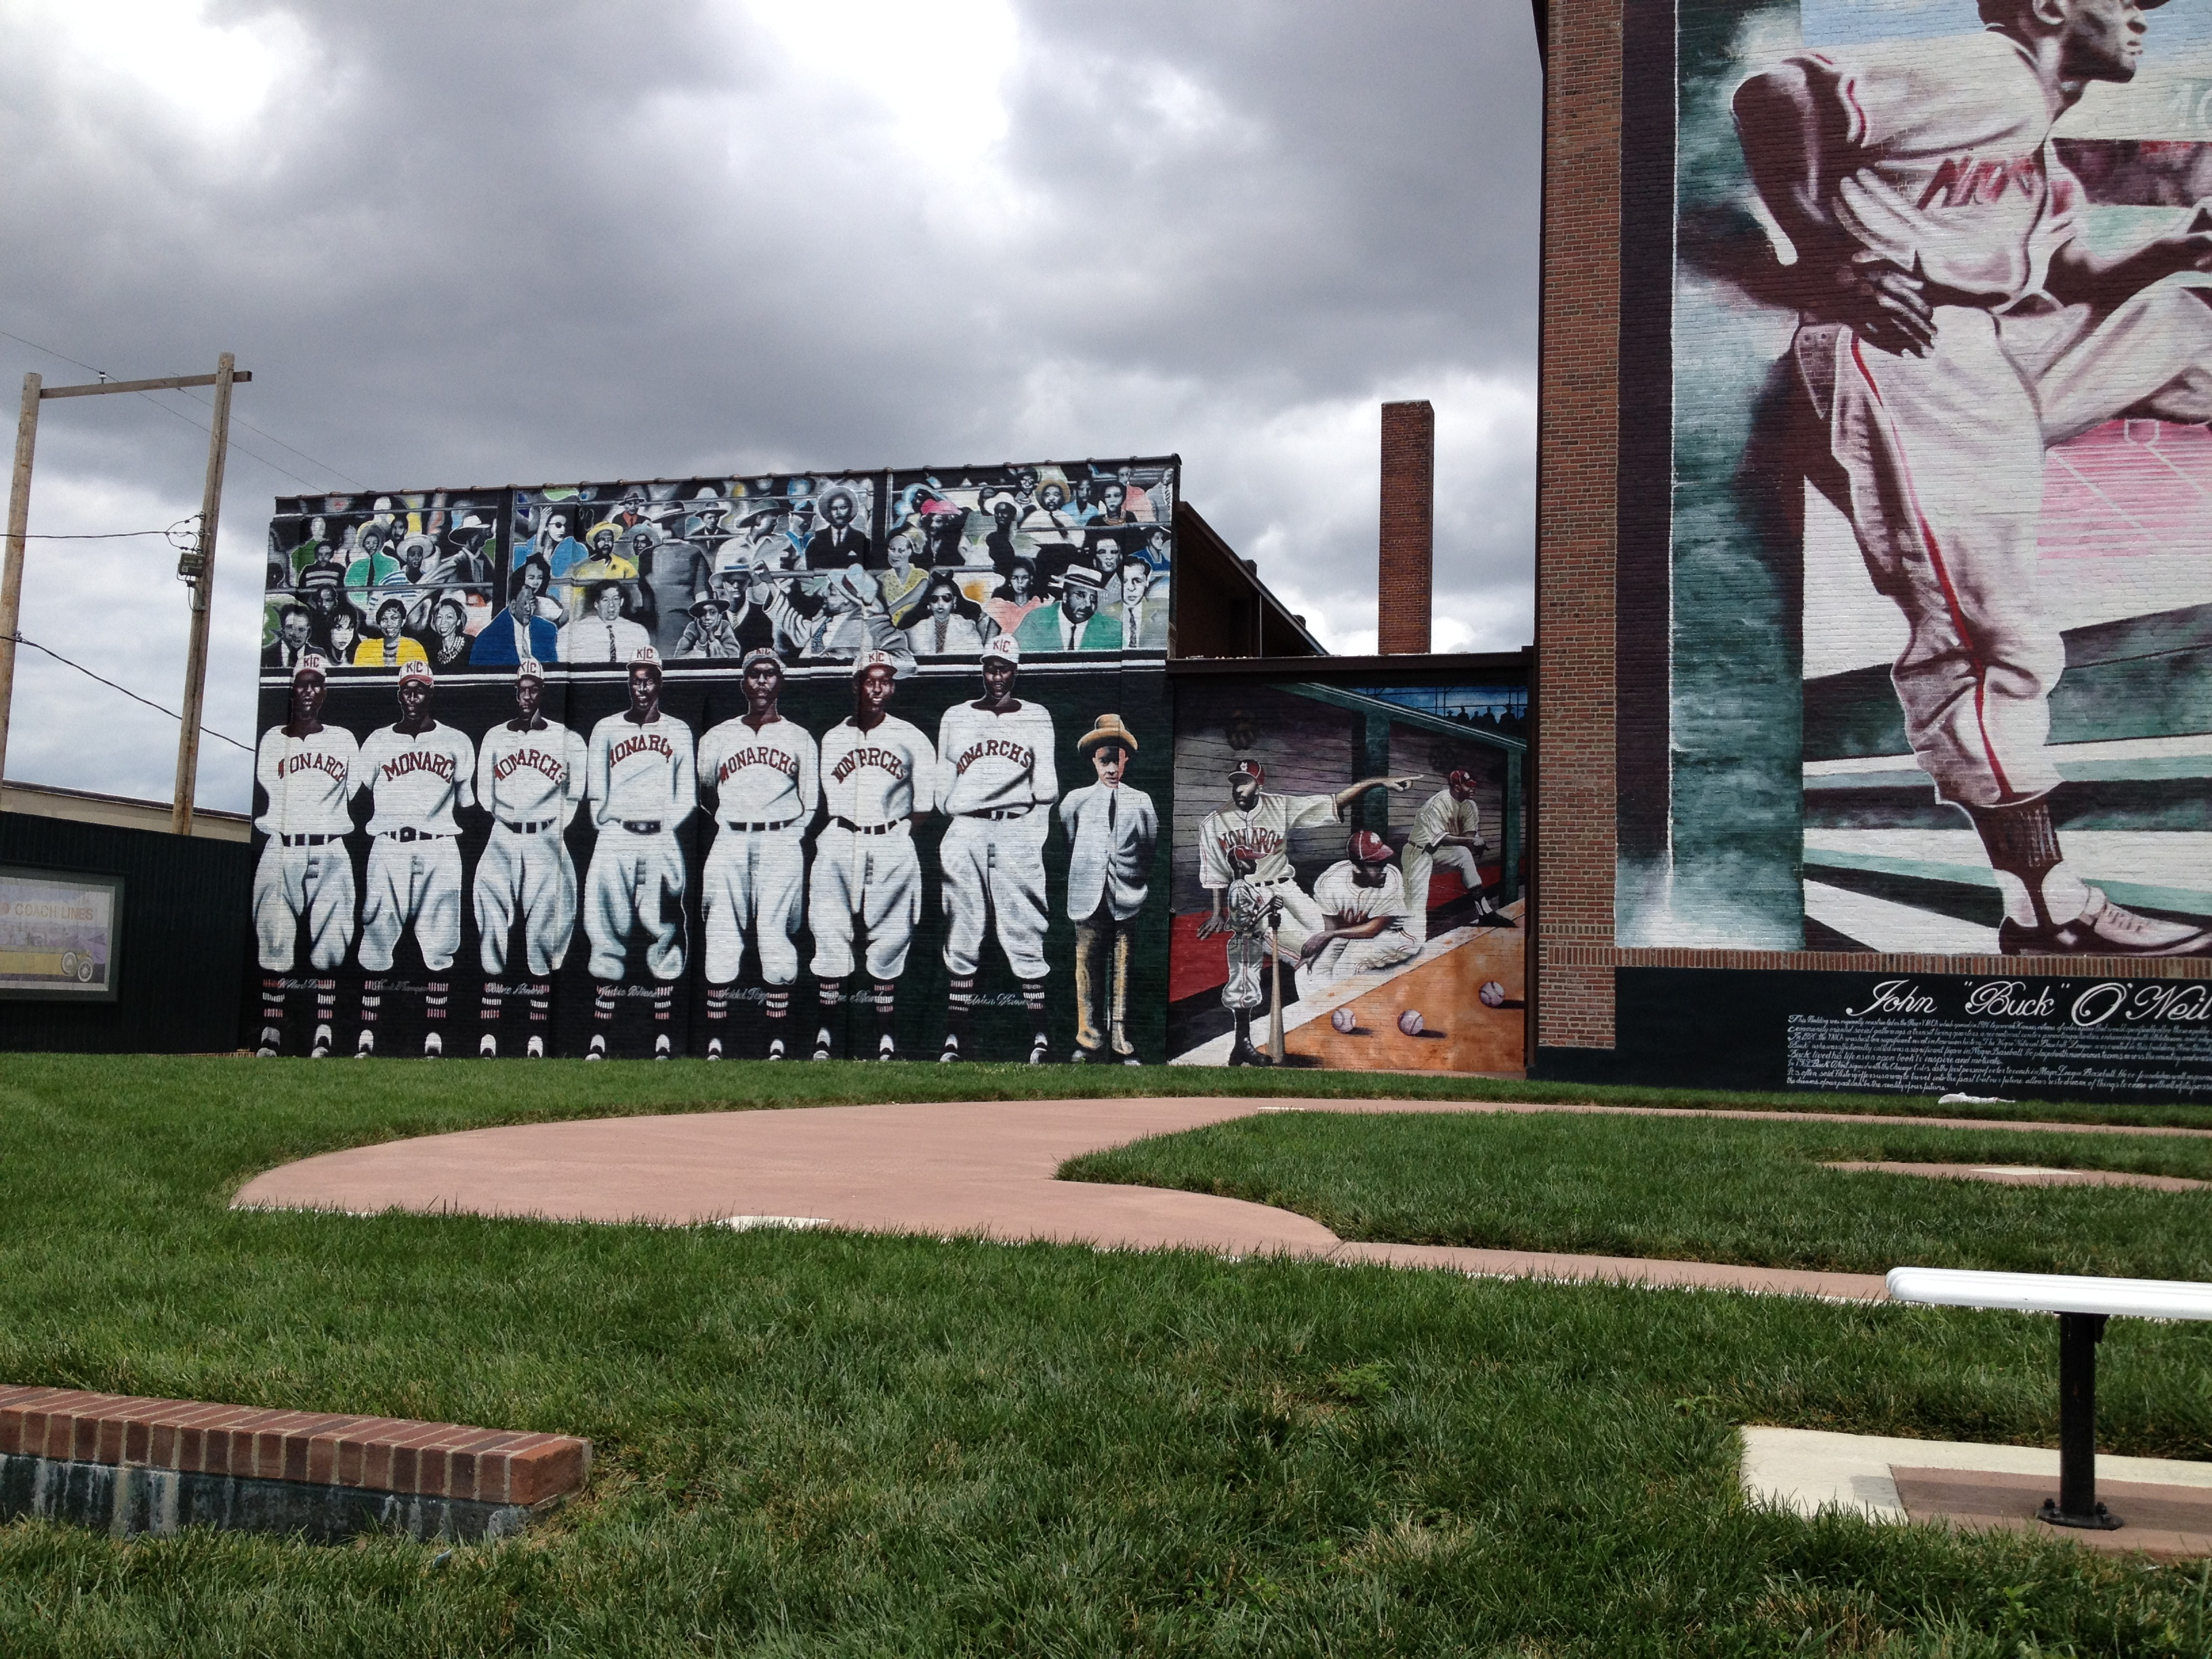 enjoying baseball after october bill on the road a local kansas city artist named alexander austin who is known for painting murals designed and painted this beauty outside the negro leagues museum in kc